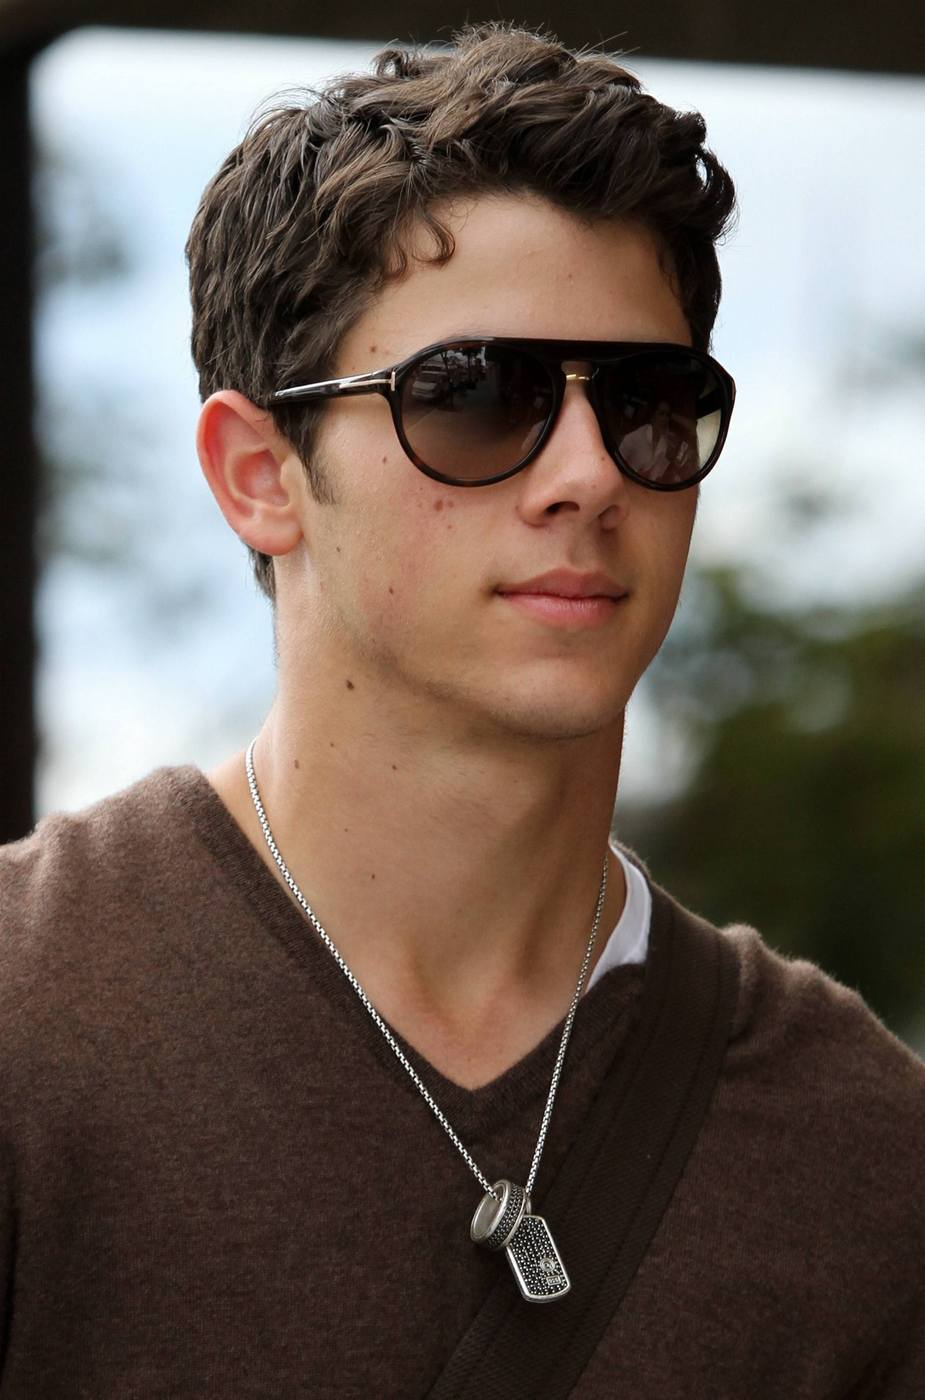 Nick Jonas Haircuts 2012 PicturesNick Jonas